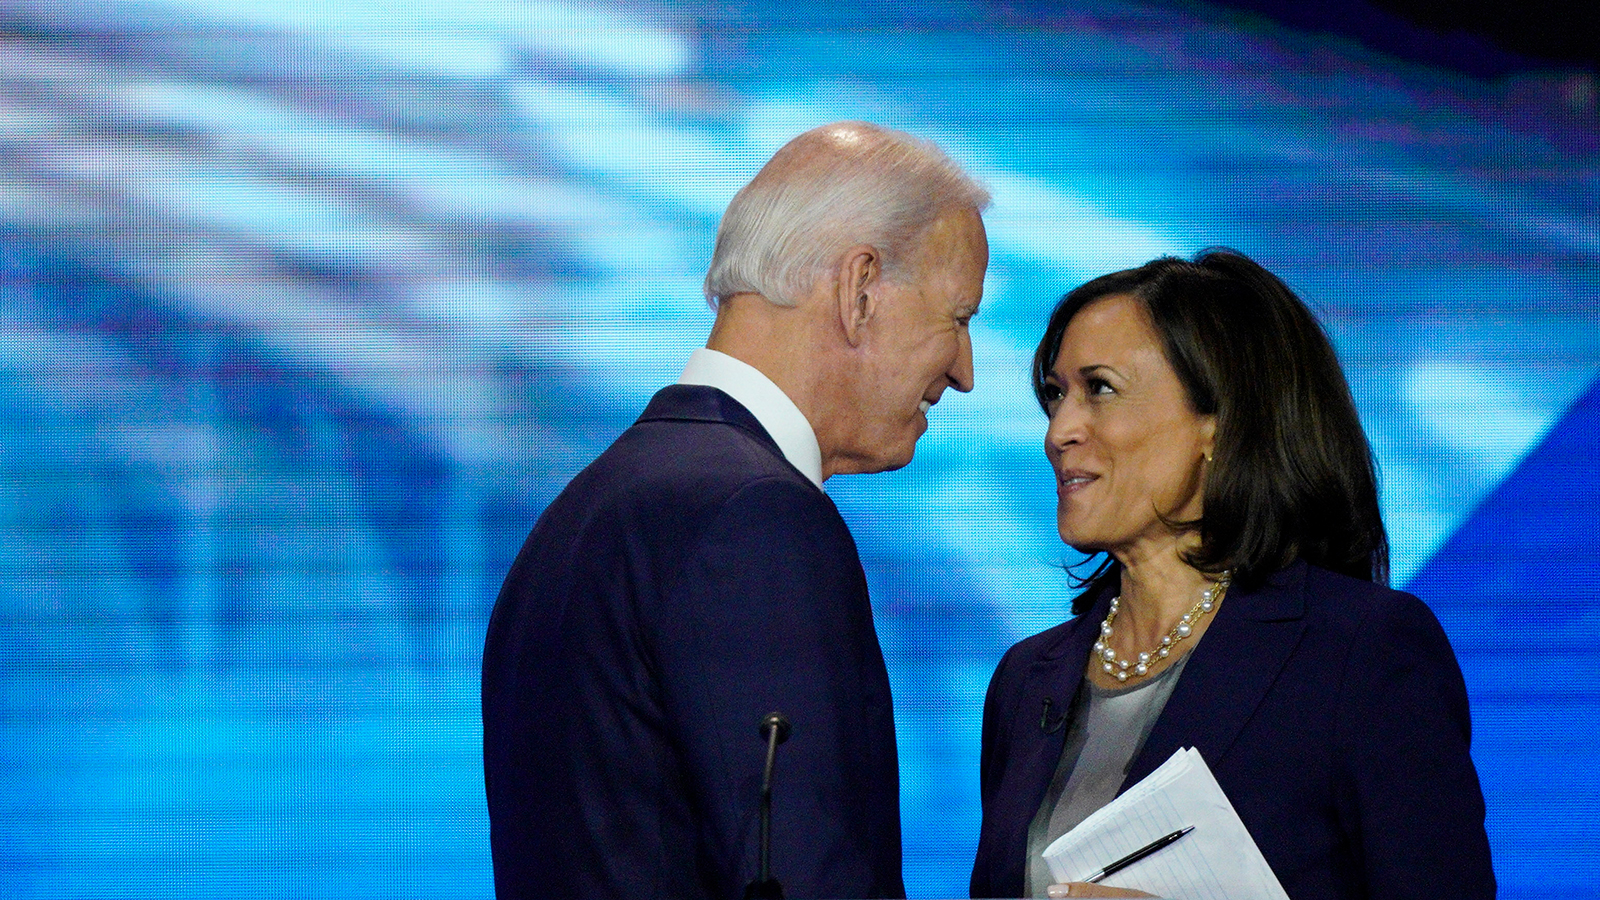 Democratic presidential candidate former Vice President Joe Biden and Sen. Kamala Harris shake hands on Thursday, September 12, 2019, after a debate hosted by ABC at Texas Southern University in Houston.